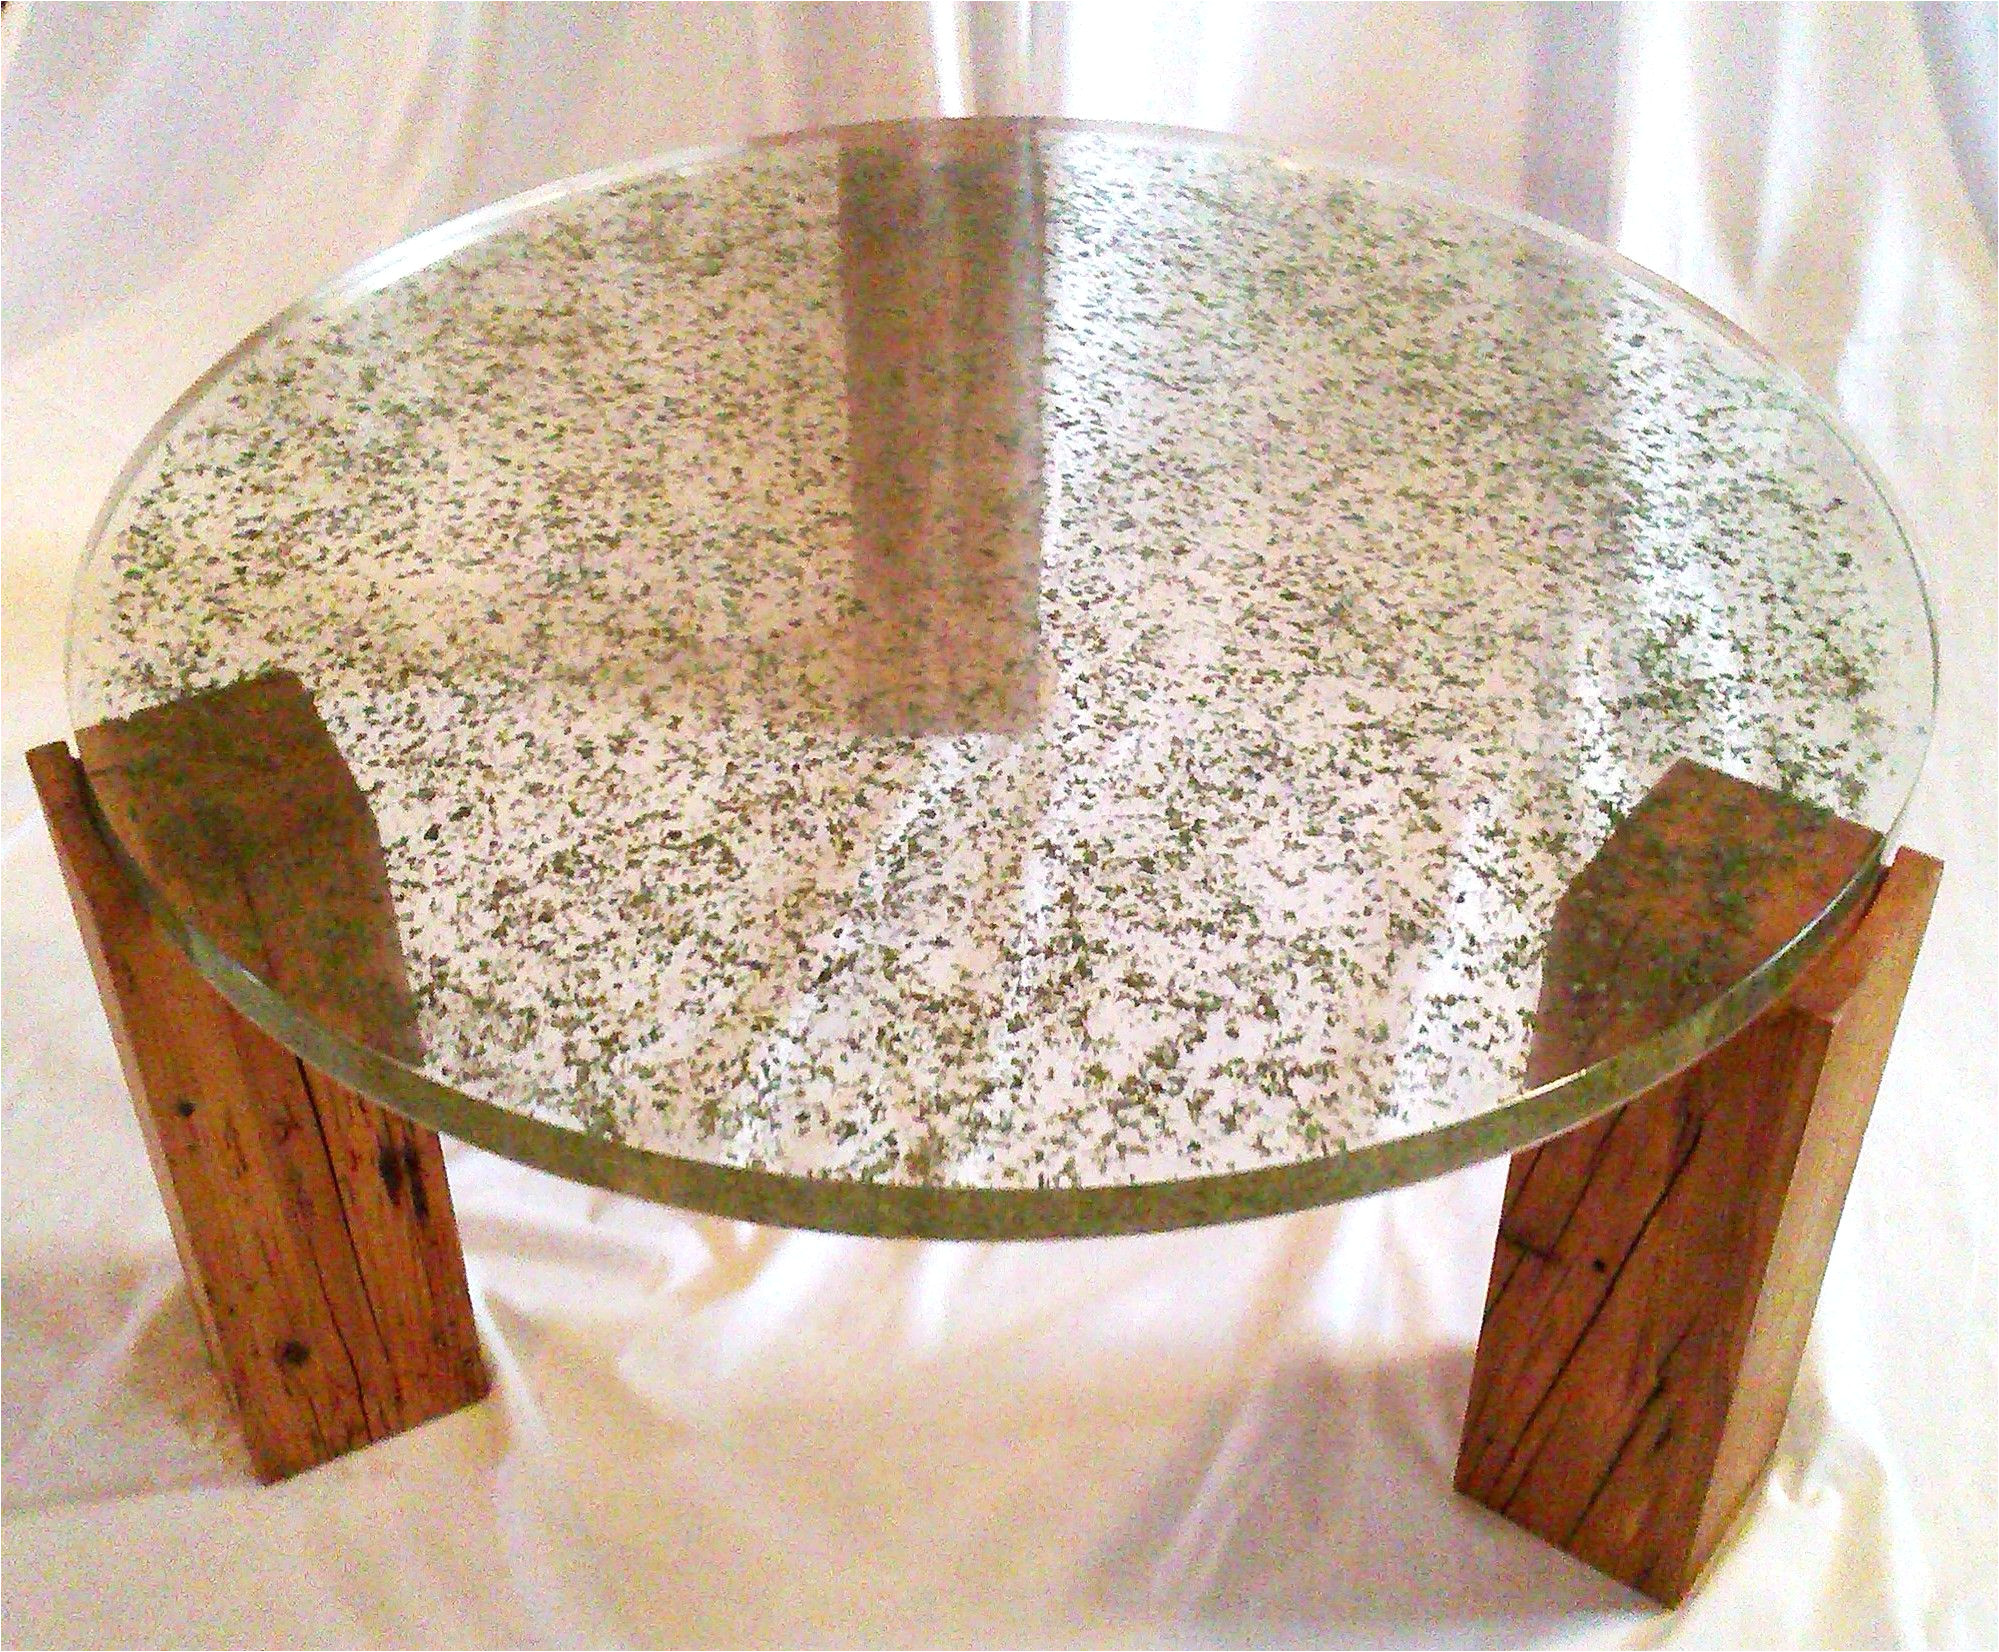 translucent resin table top with embedded crushed leaves by fogliart